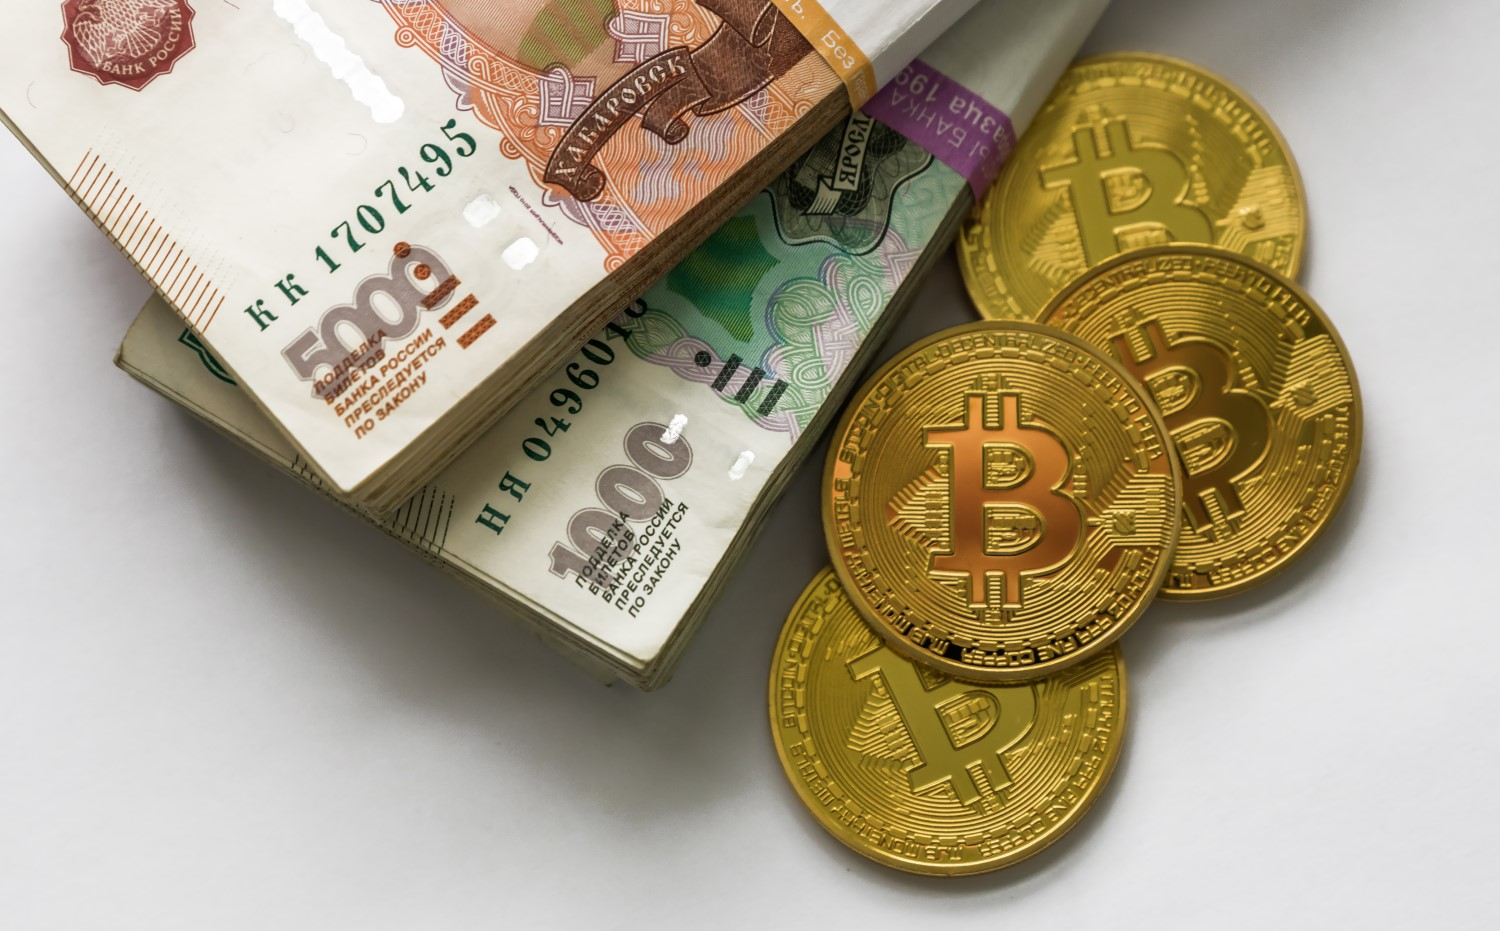 Russia Wants to Be Able to Seize Cybercriminals' Bitcoin